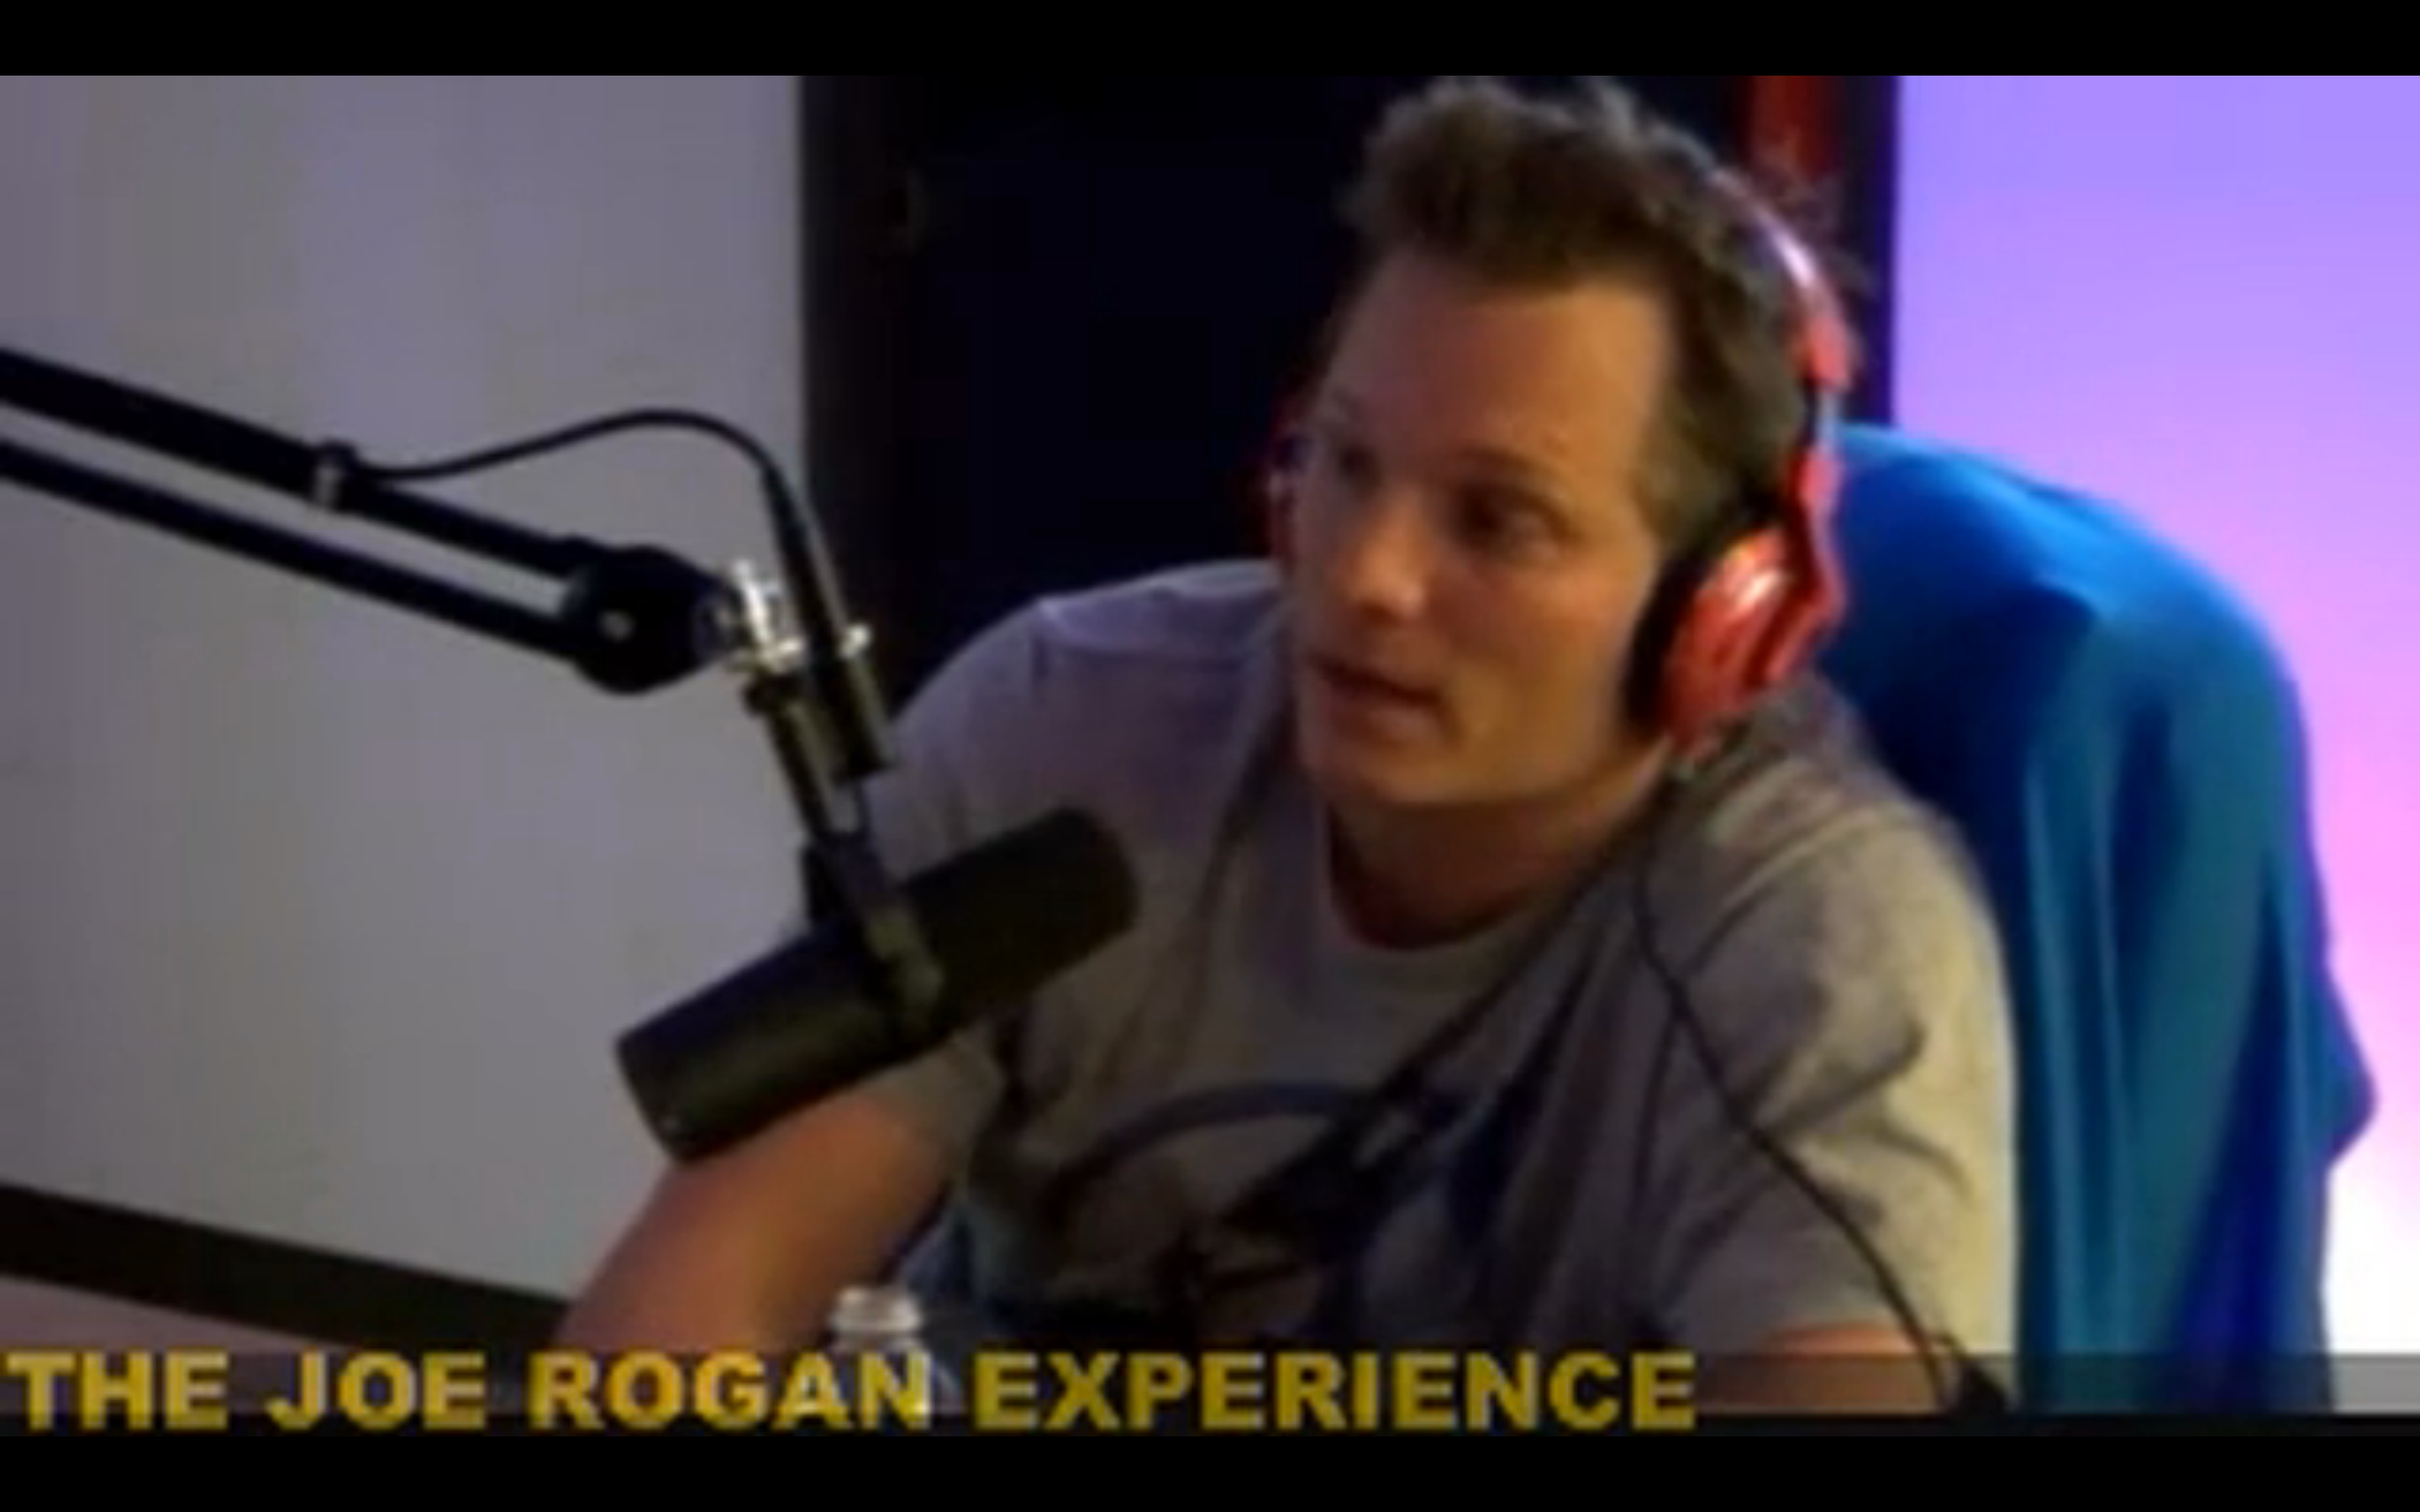 The Joe Rogan Experience #309 - Adam Hunter, Brian Redban